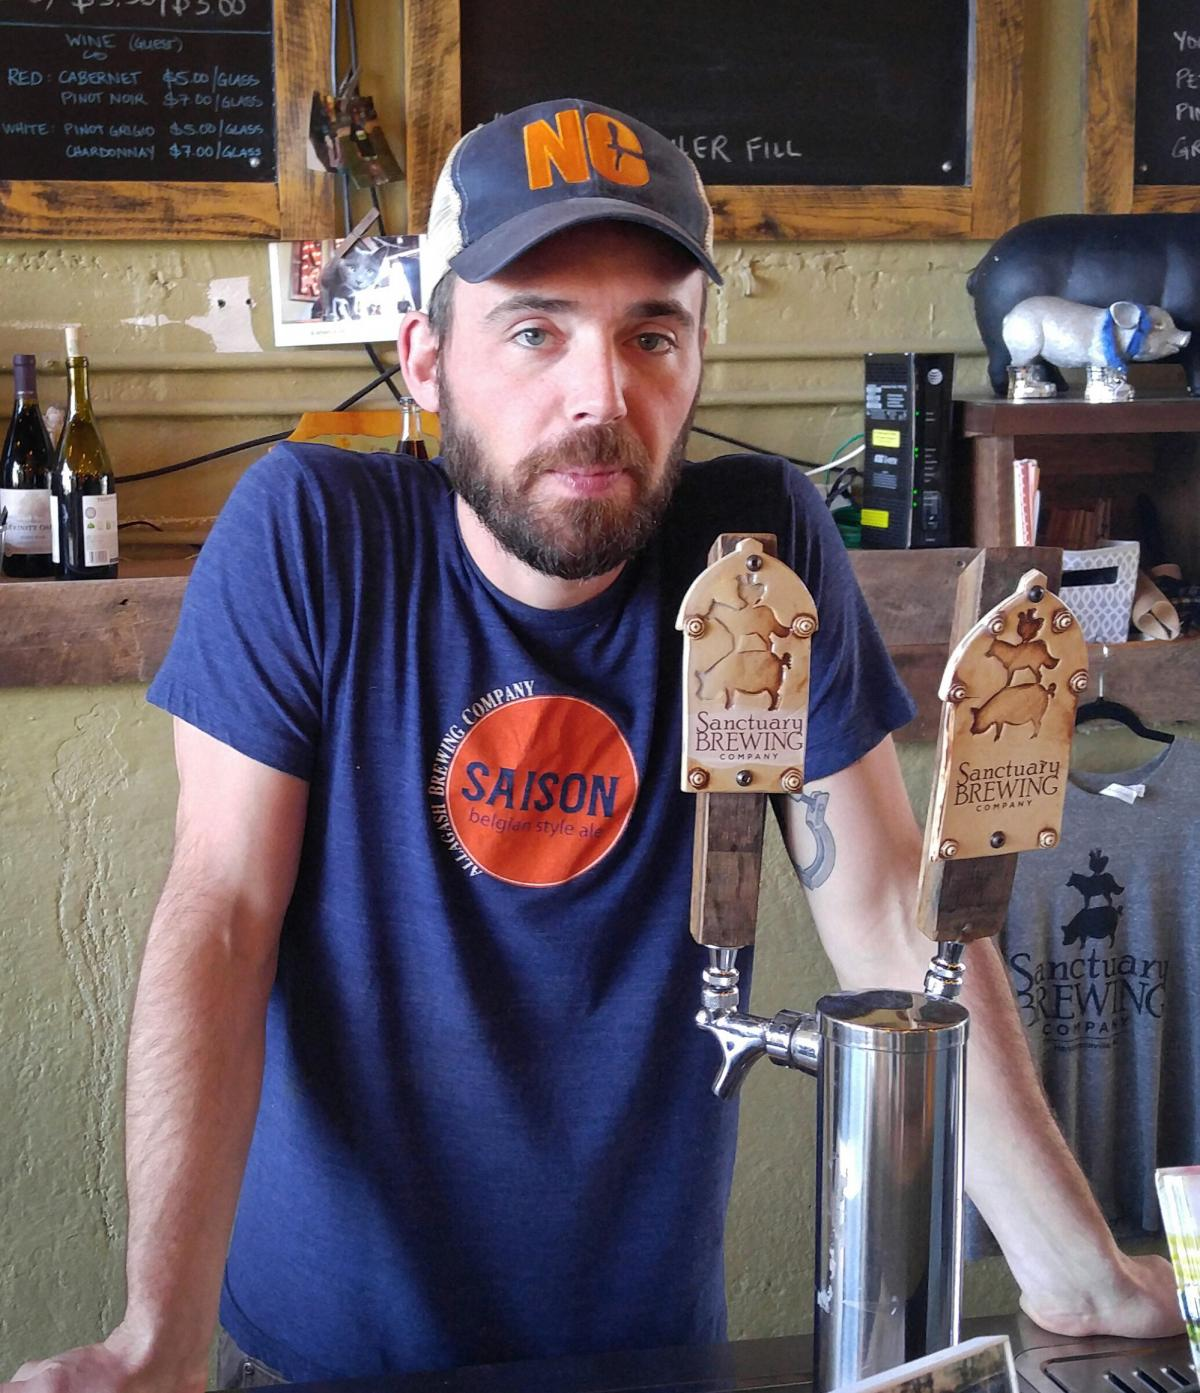 Joe Dinan, co-owner of Sanctuary Brewing in Hendersonville, N.C., says his subsidized health coverage under the Affordable Care Act paid for his skin cancer surgery this year.